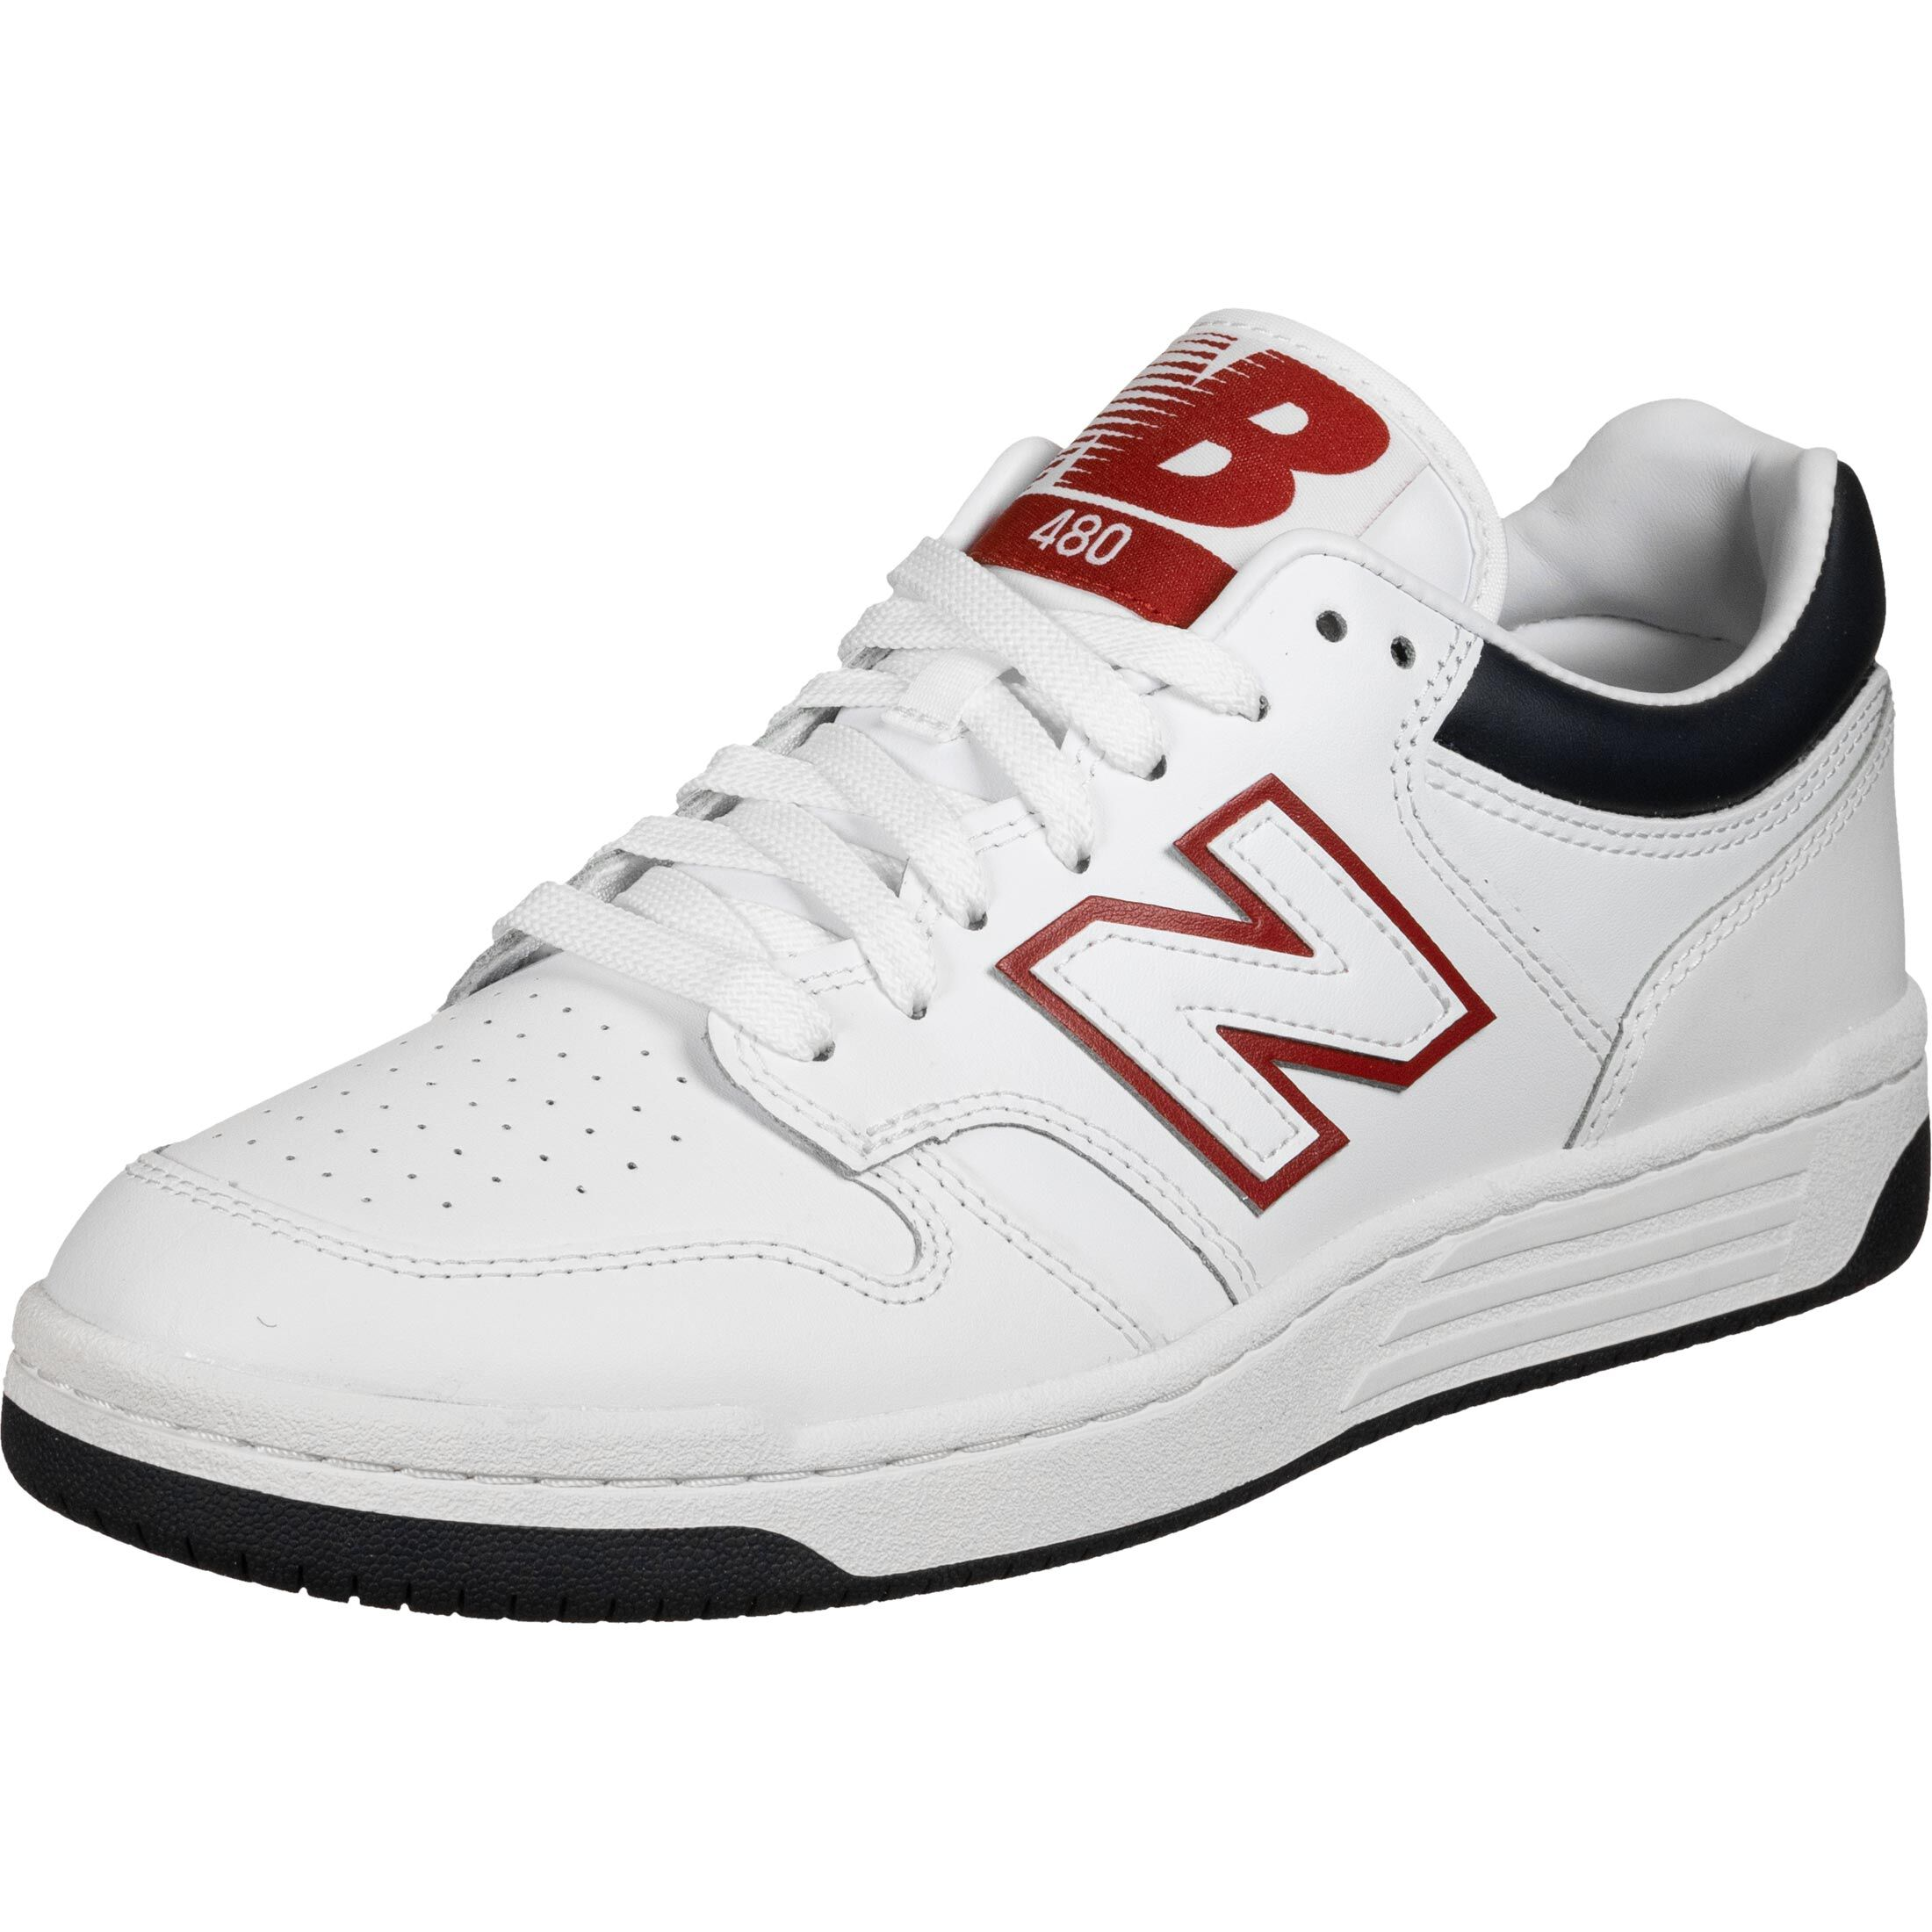 New Balance 480 - Sneakers Low at Stylefile